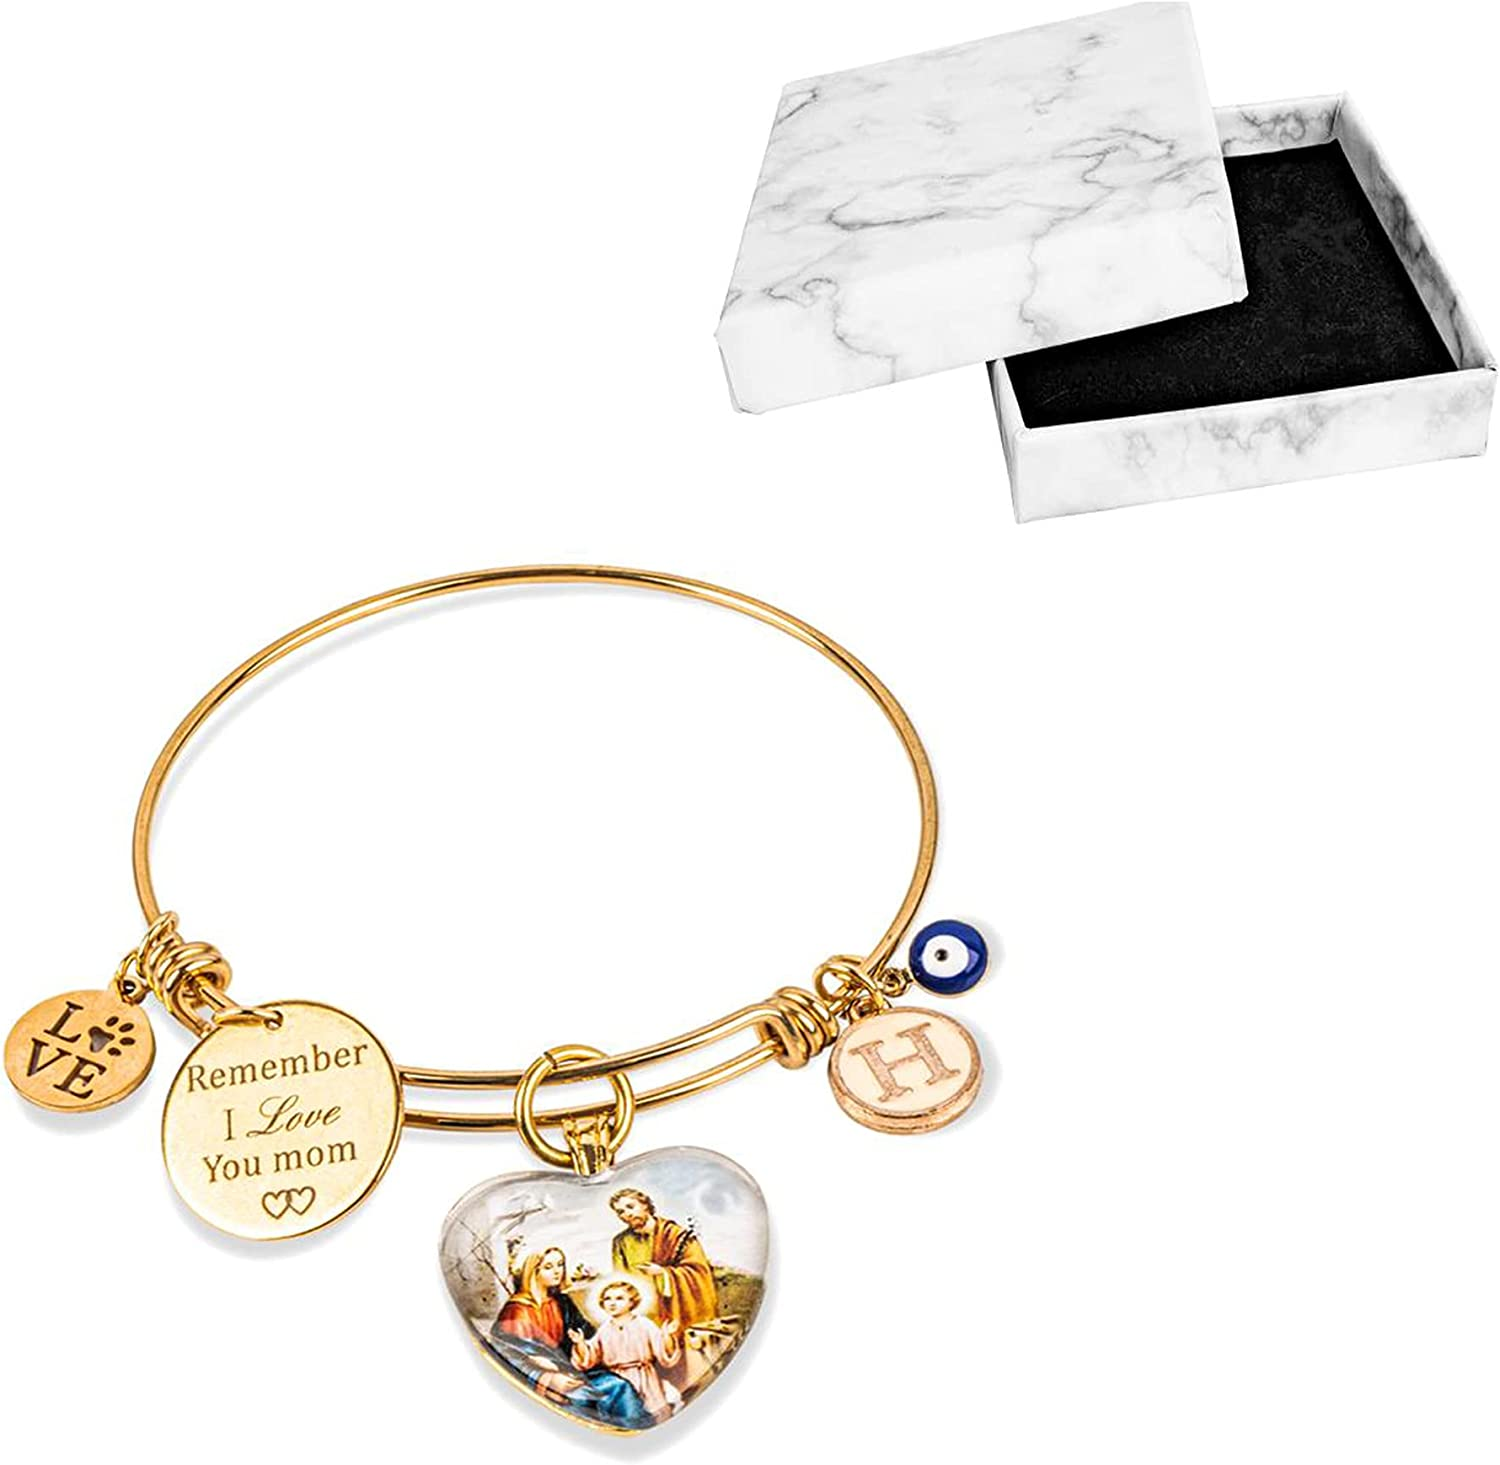 CSZhou-Expandable Wire Bangle Bracelets for Women and Mom, Evil Eye Bracelet, Mother's Day Gifts, Jewelry Mom Gifts with Initial A-Z Letter Bonded by Love Charms, Catholic Virgin, and Love Paw Prints, 2